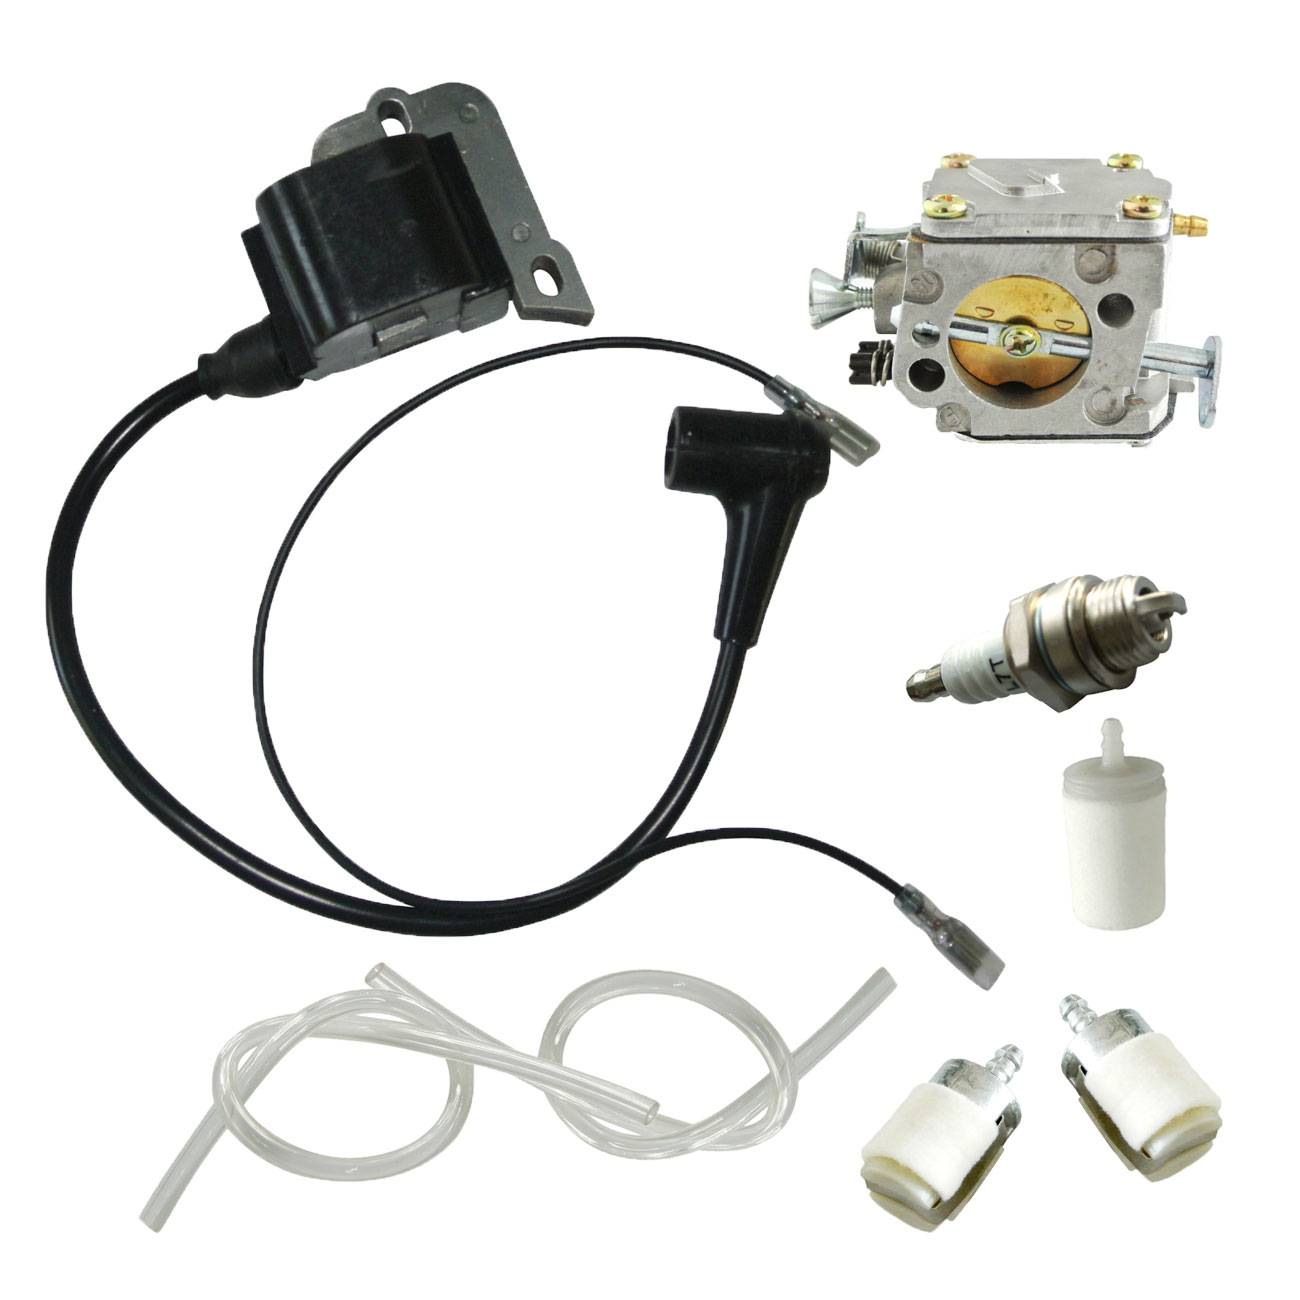 Ignition Coil with Carburetor For Husqvarna 50 51 55 254 257 261 262 XP 61 268 268XP 272 272XP<br>